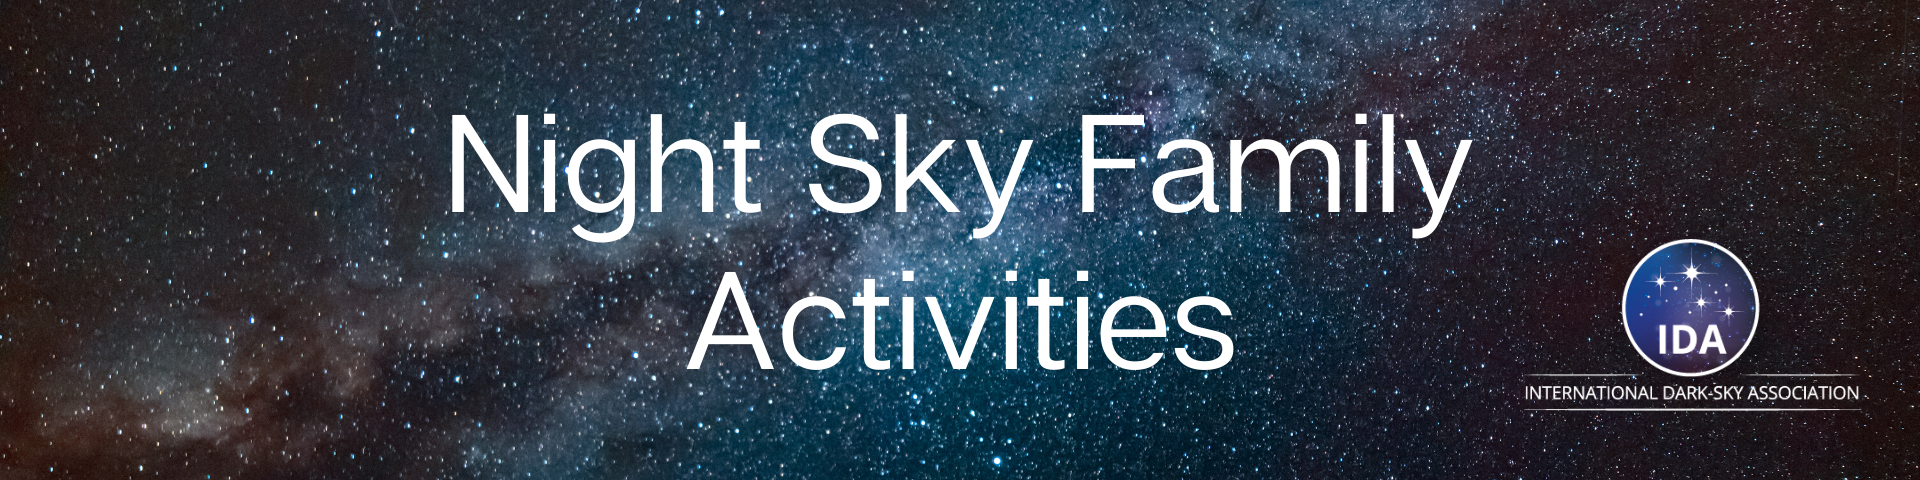 Family Activities to Enjoy the Night from Home Image